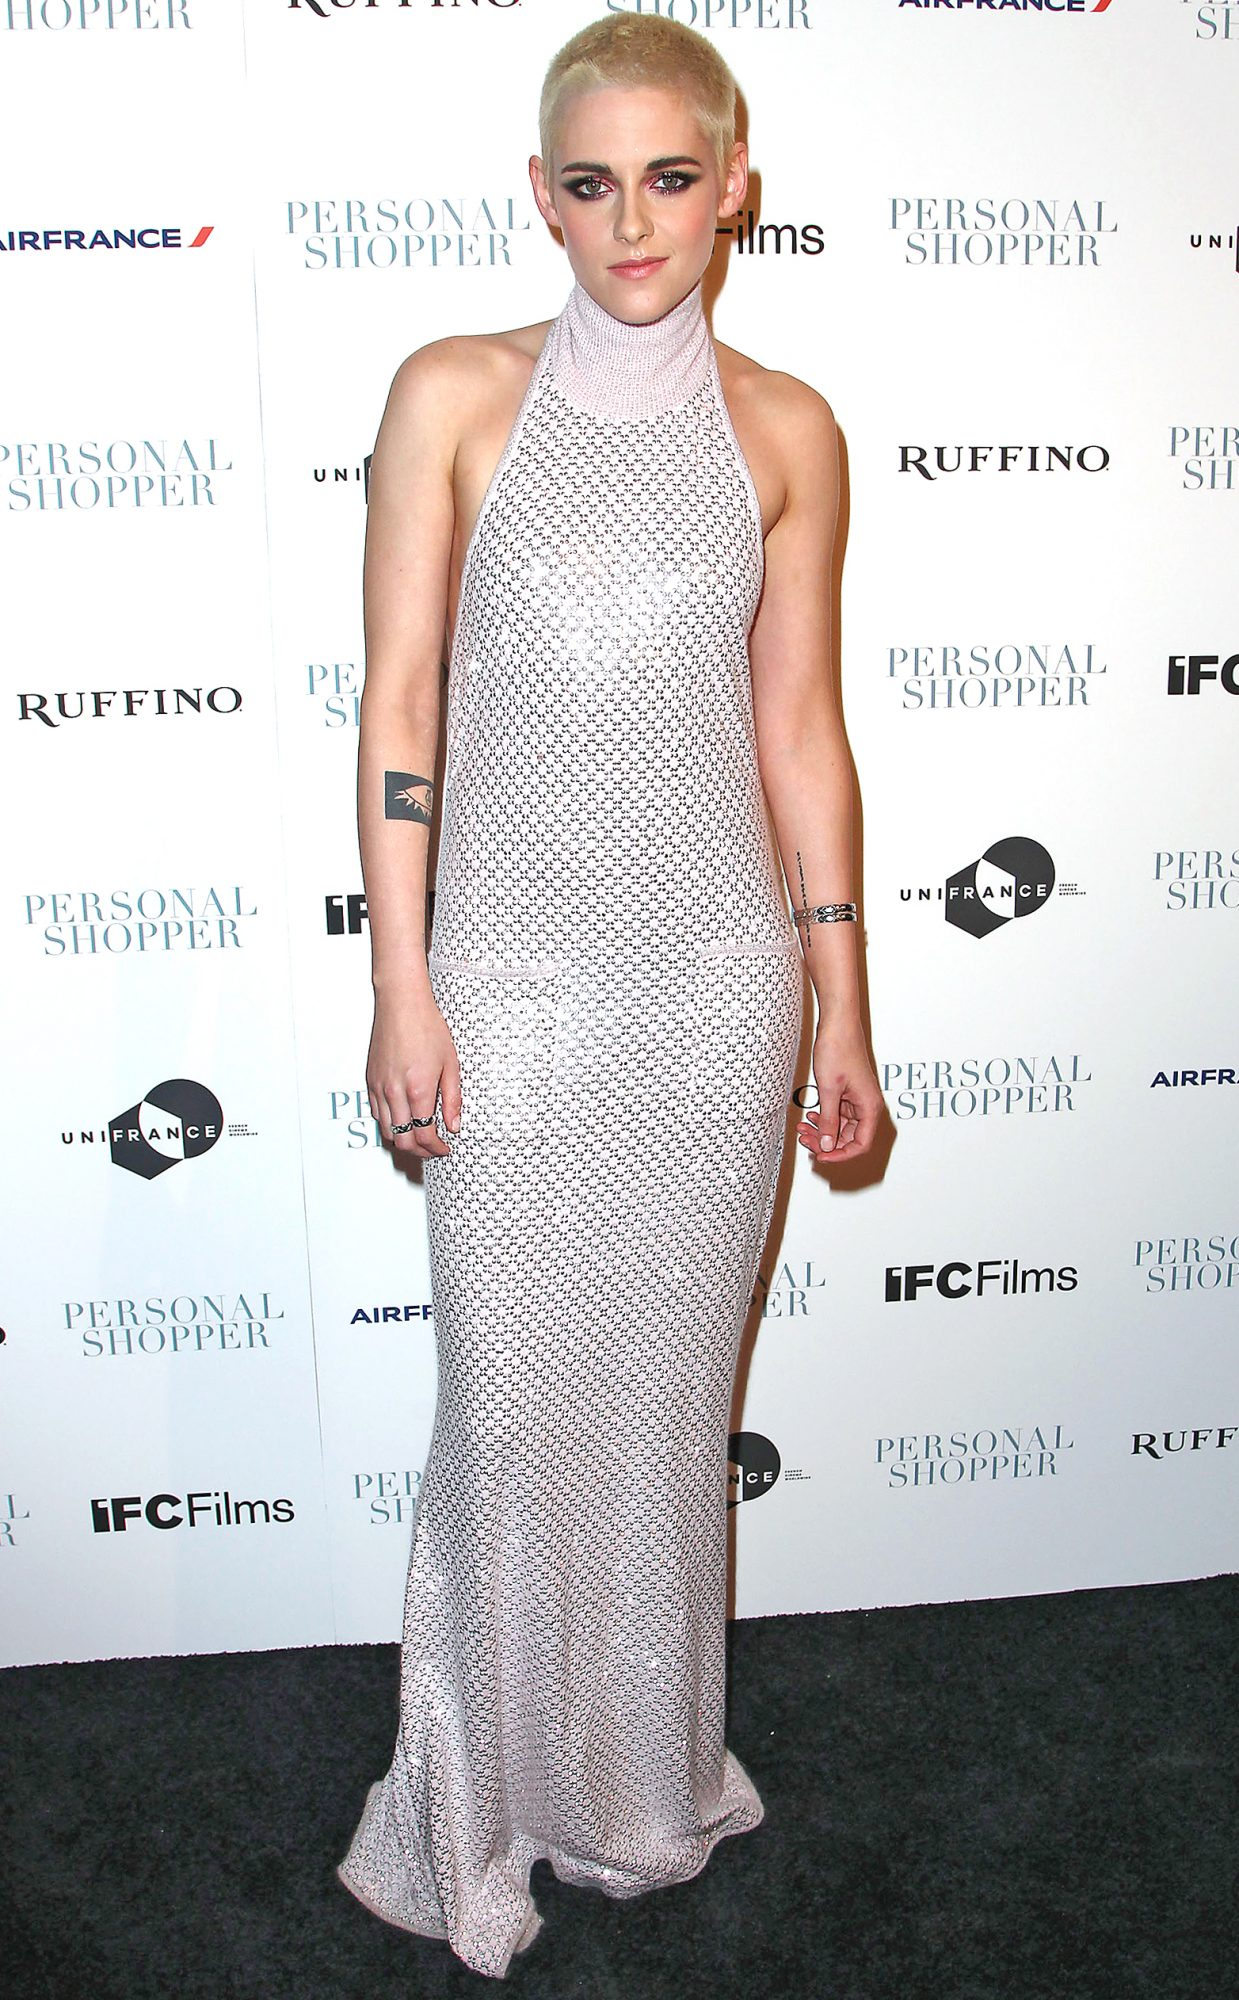 Ruffino, Air France and UniFrance Present a Special Screening of IFC Films' 'Personal Shopper', New York, USA - 09 Mar 2017